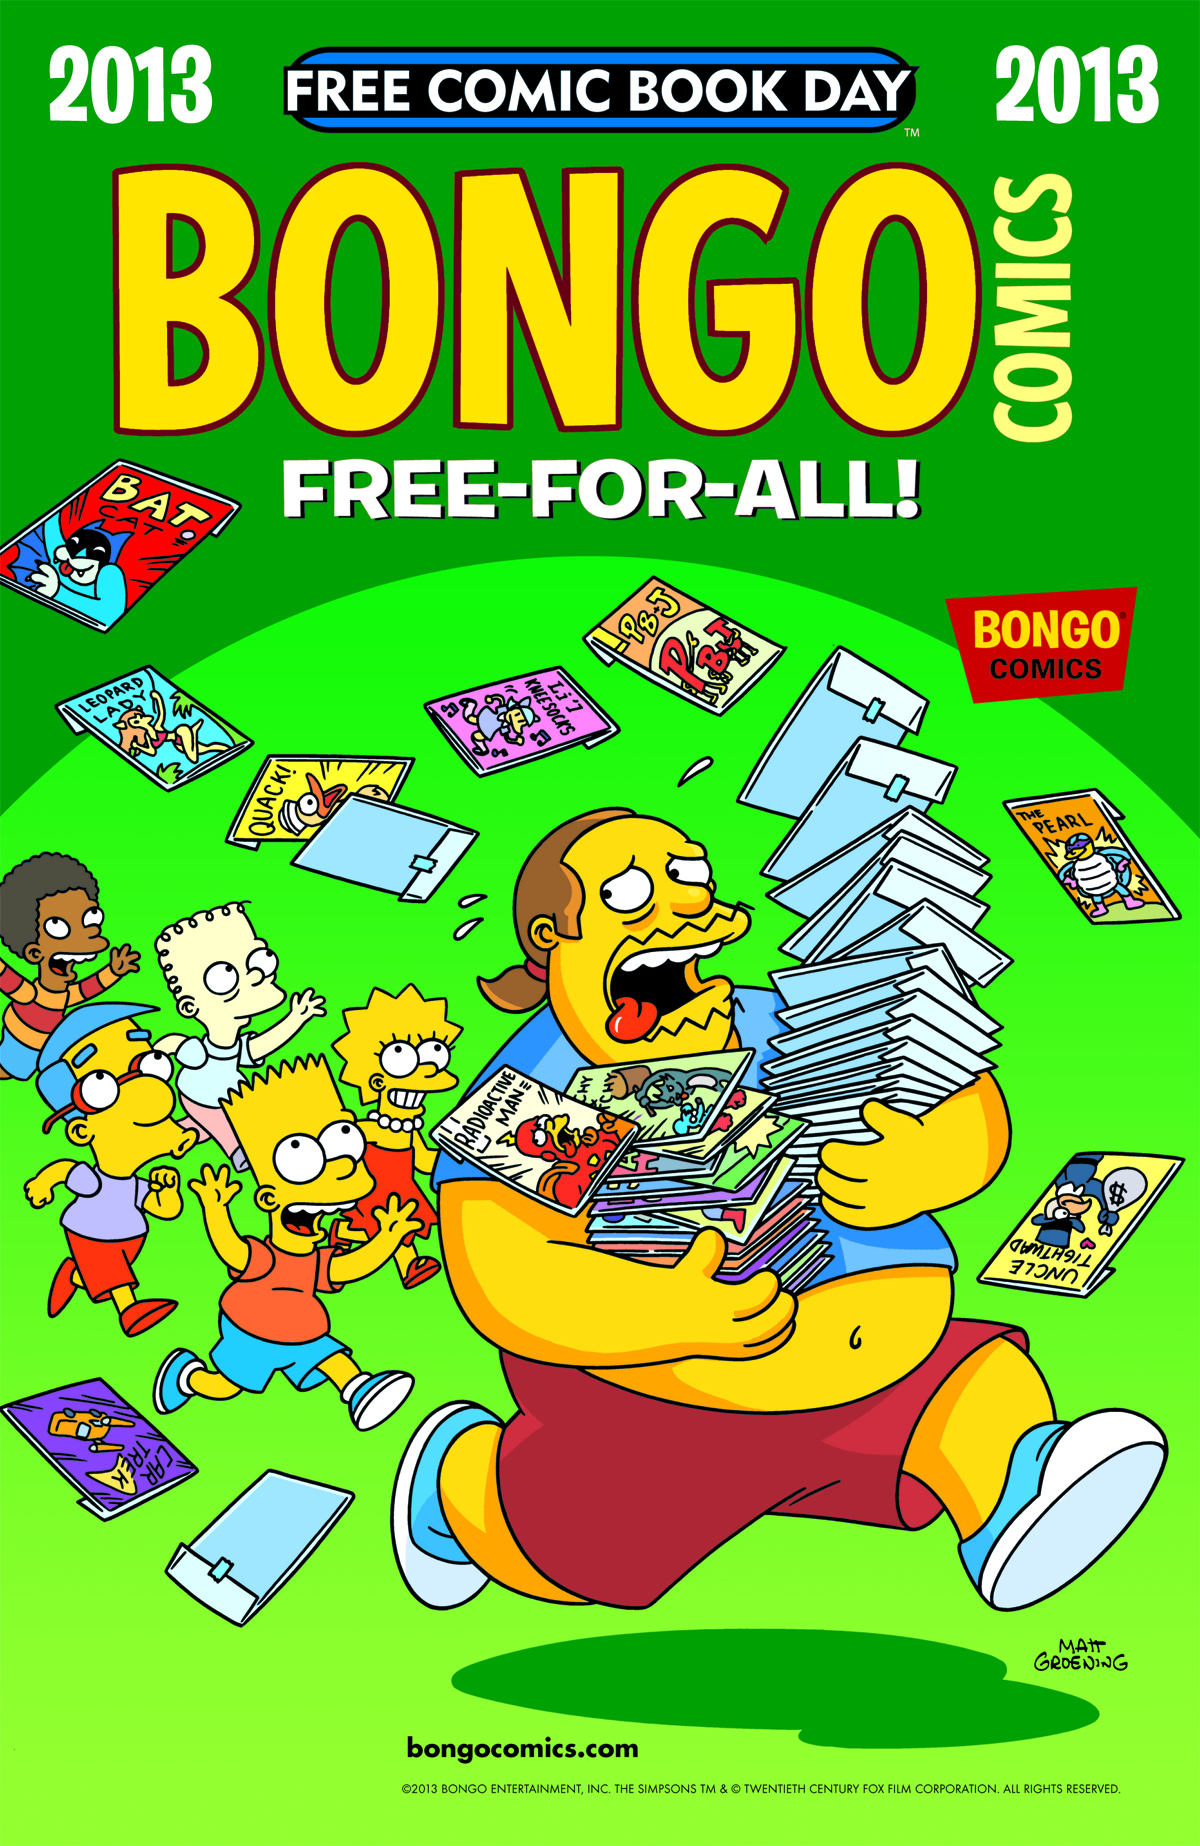 FCBD 2013 BONGO FREE-FOR-ALL